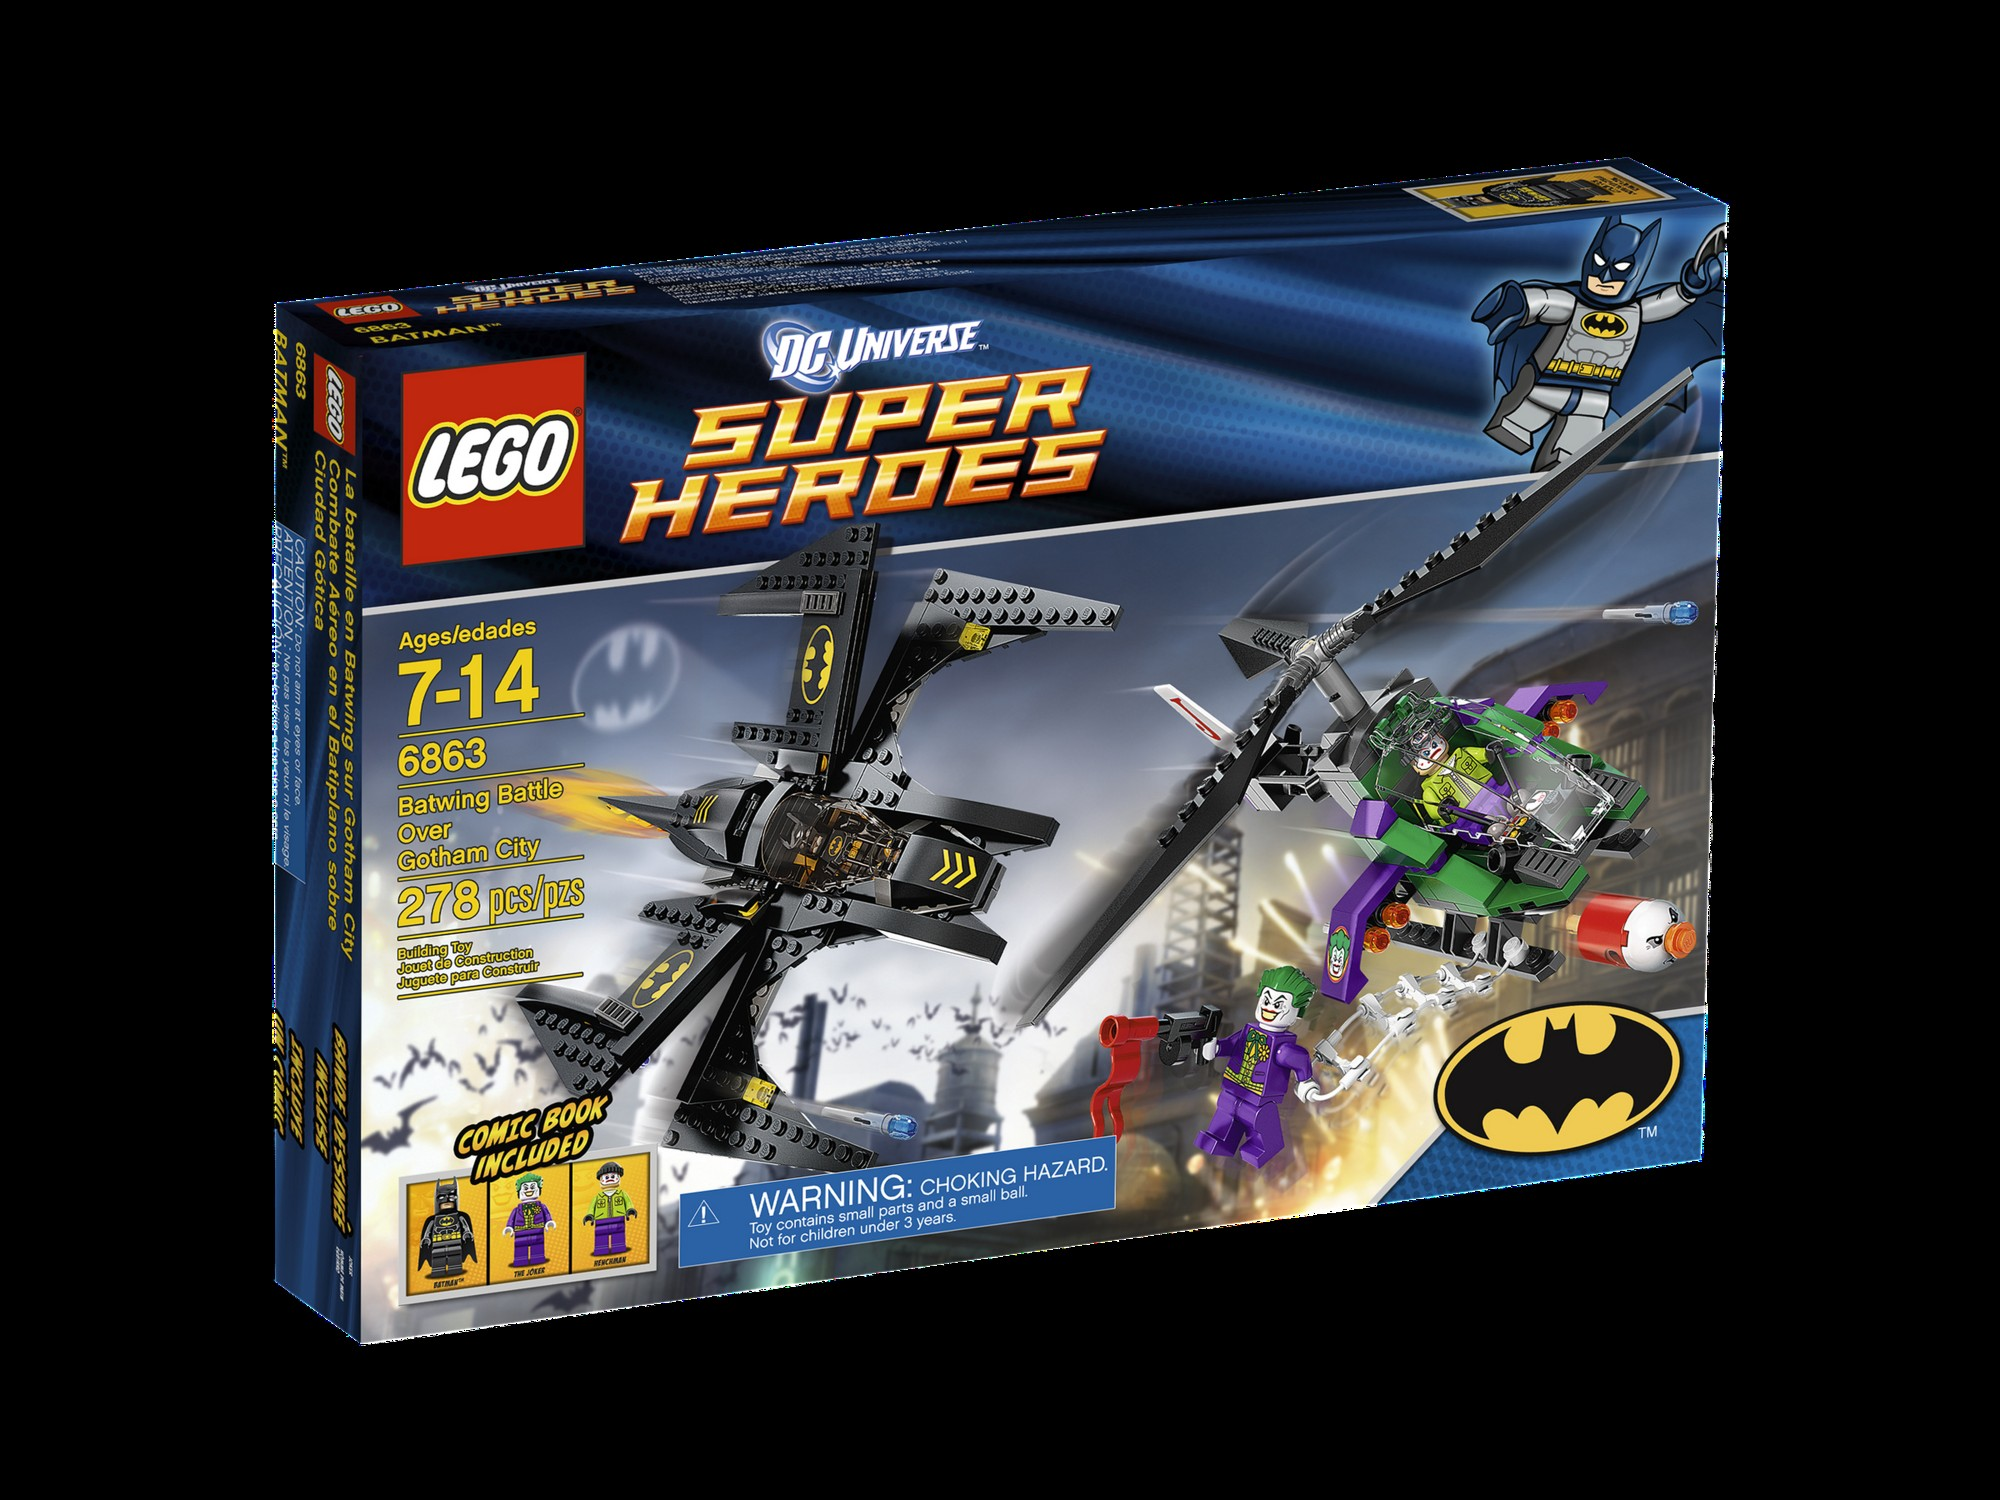 Lego March Calendar Más Recientemente Liberado Review 6863 Batwing Battle Over Gotham City Brickipedia Of Lego March Calendar Actual Free Lego Powerpoint Template Genuine Spider Labelled Diagram Luxury